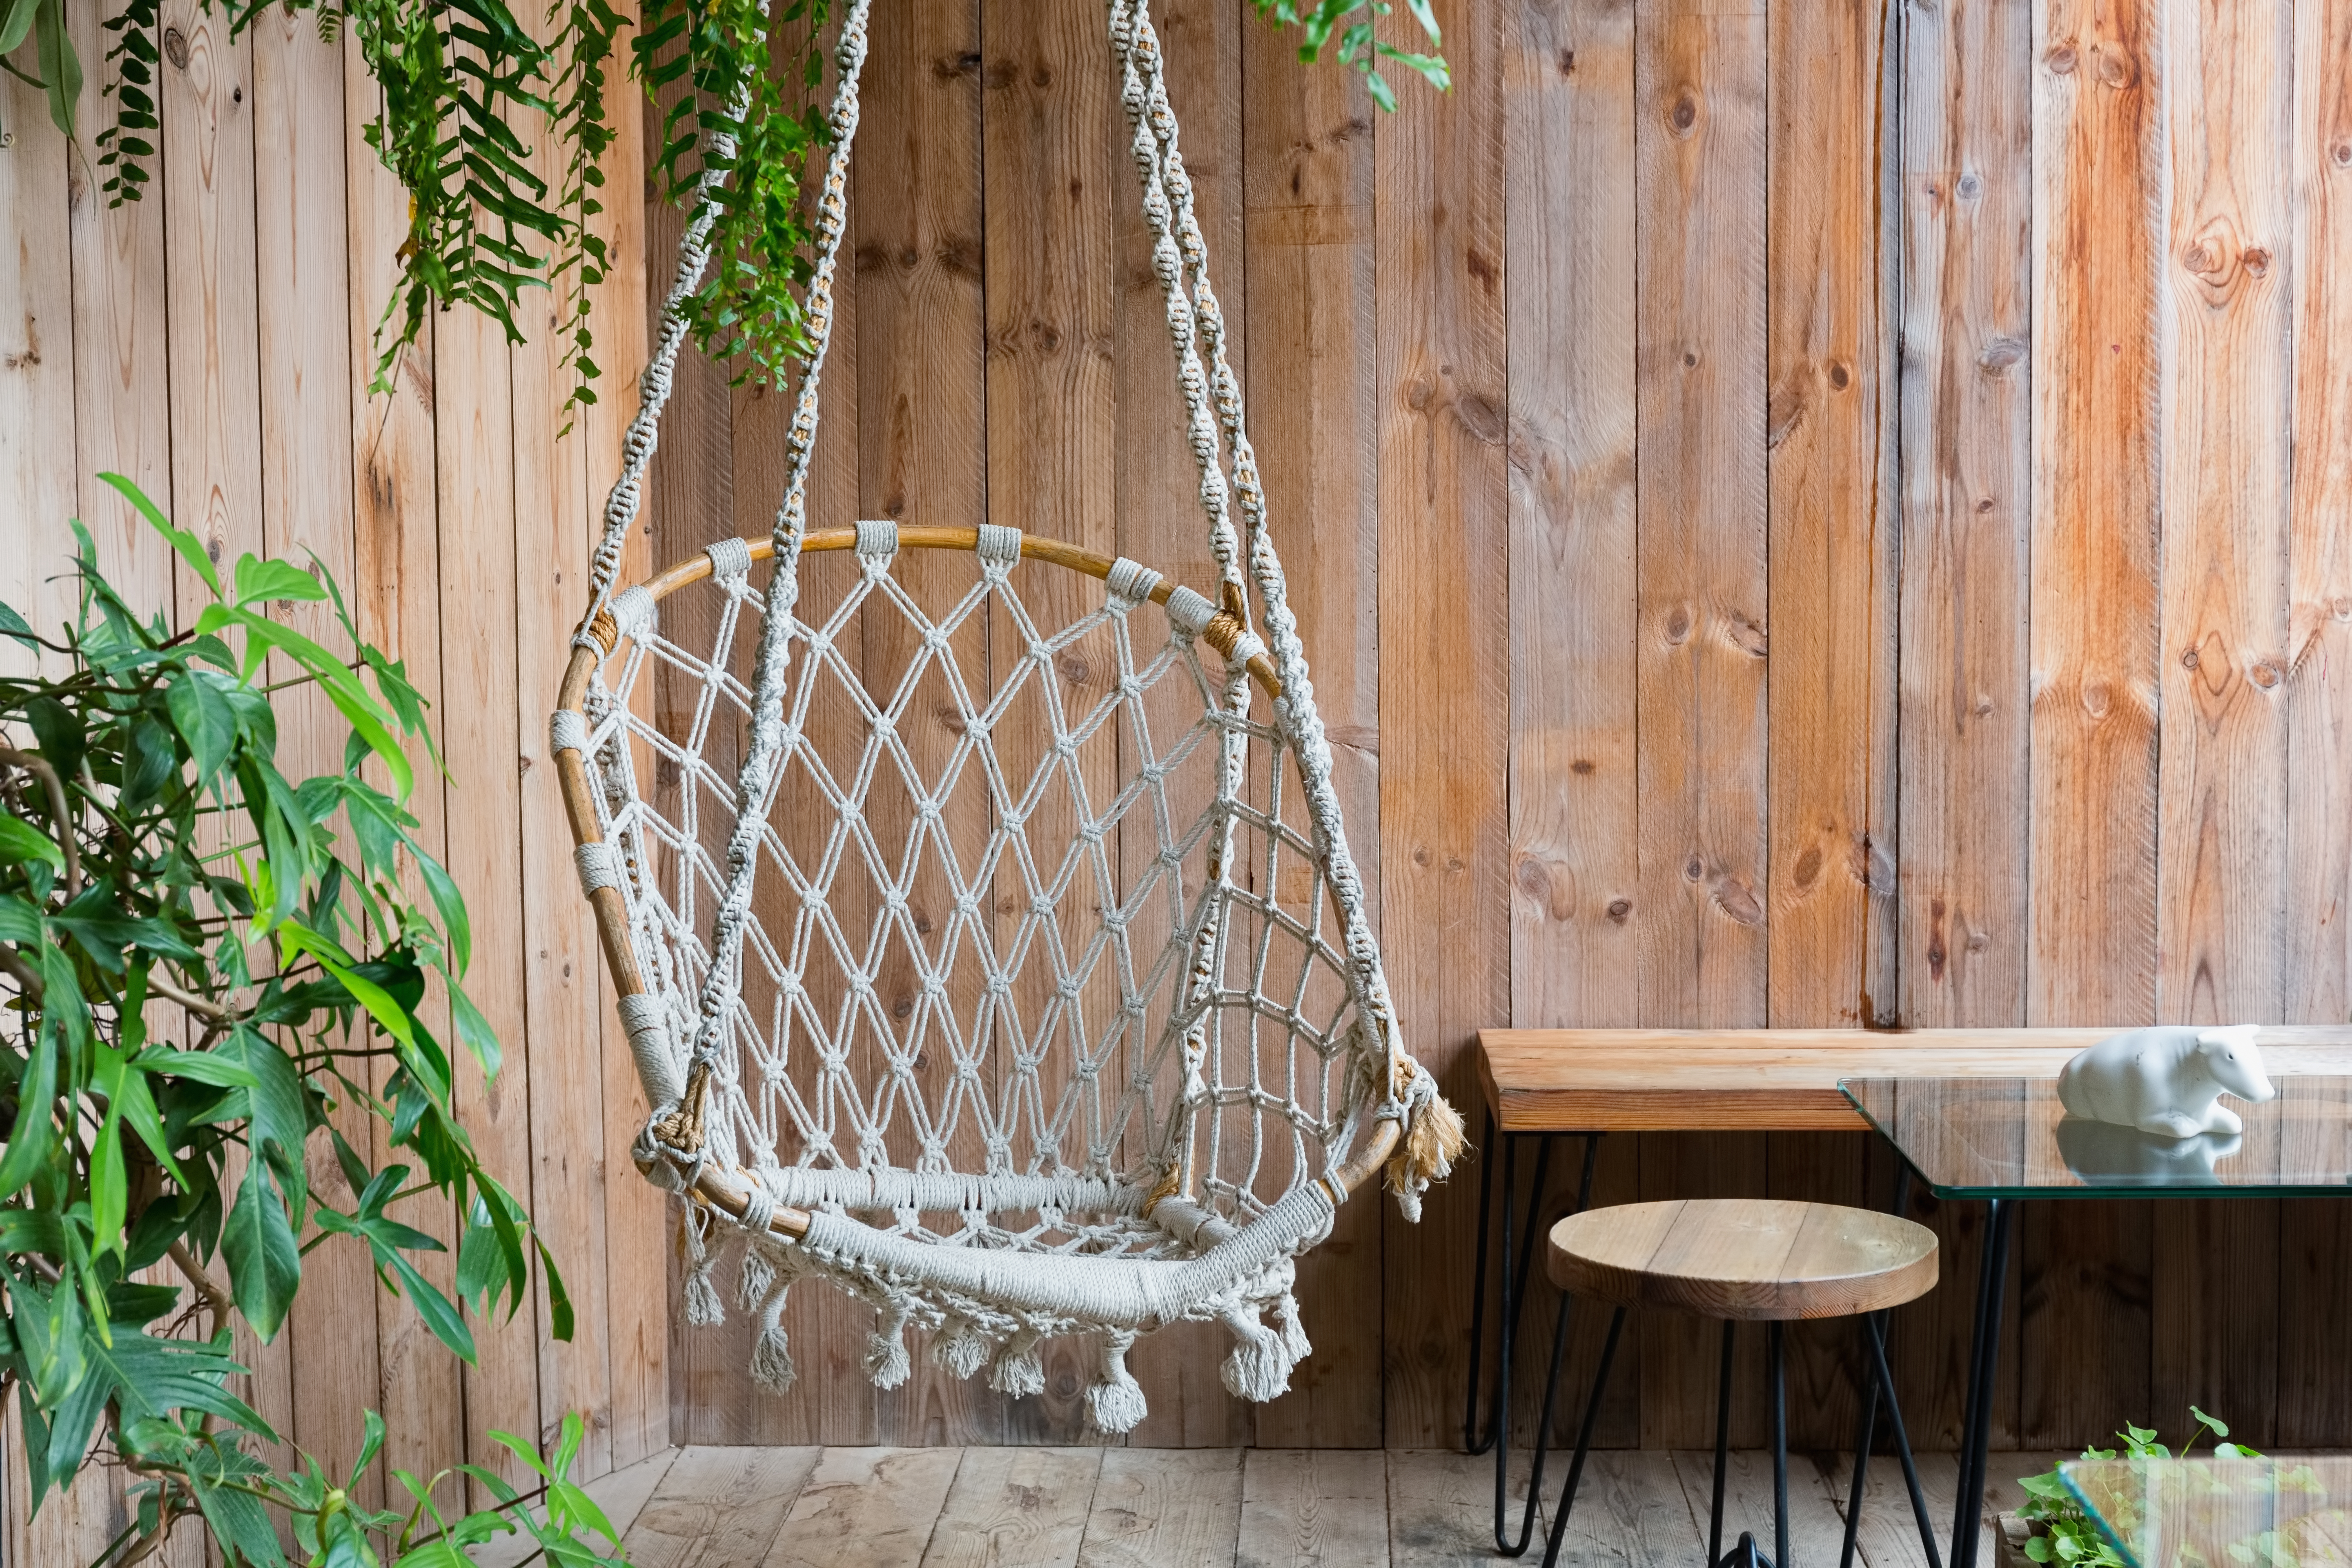 Hanging rope chair in a wooden patio wit